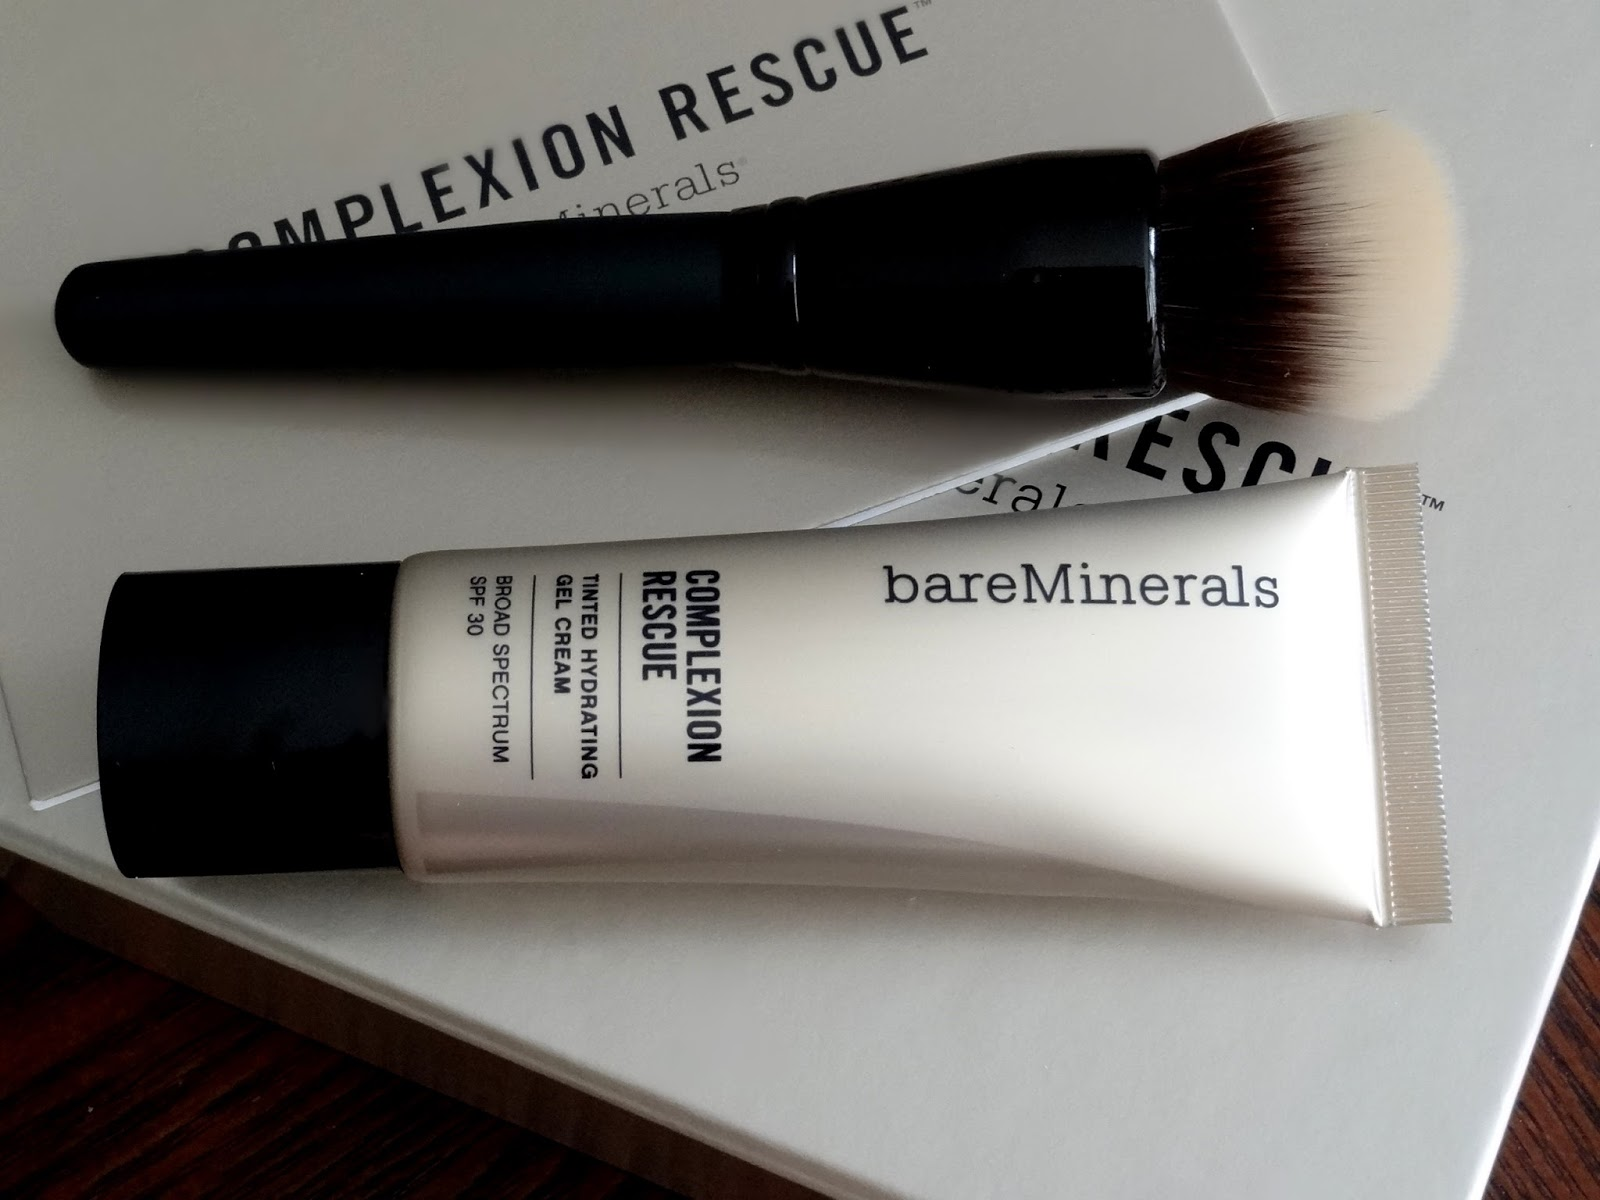 bareMinerals Smoothing Face Brush and Complexion Rescue in Ginger Review, Photos & Swatches